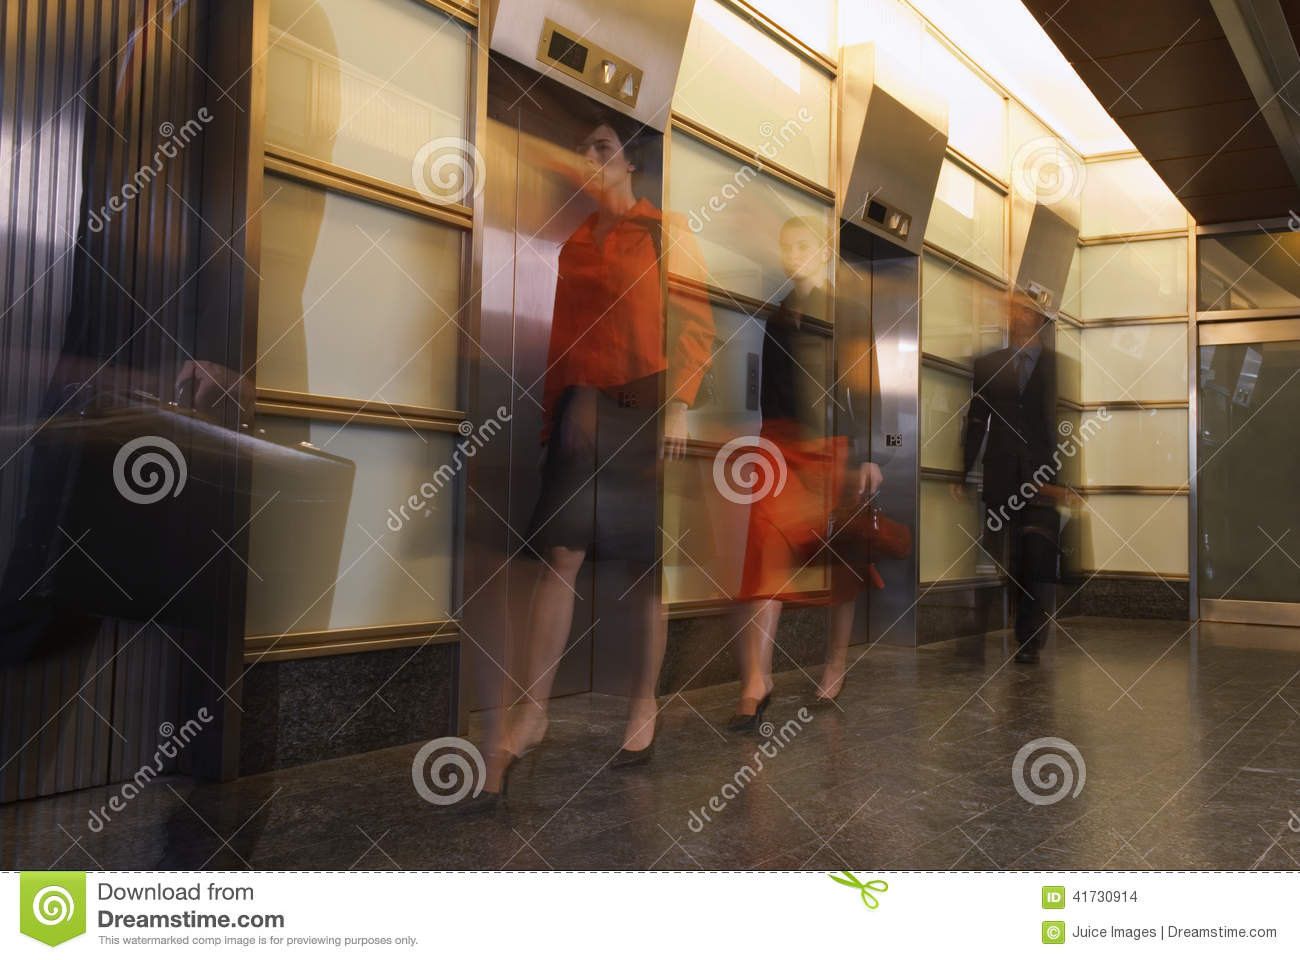 Motion shot of businesspeople walking past elevators